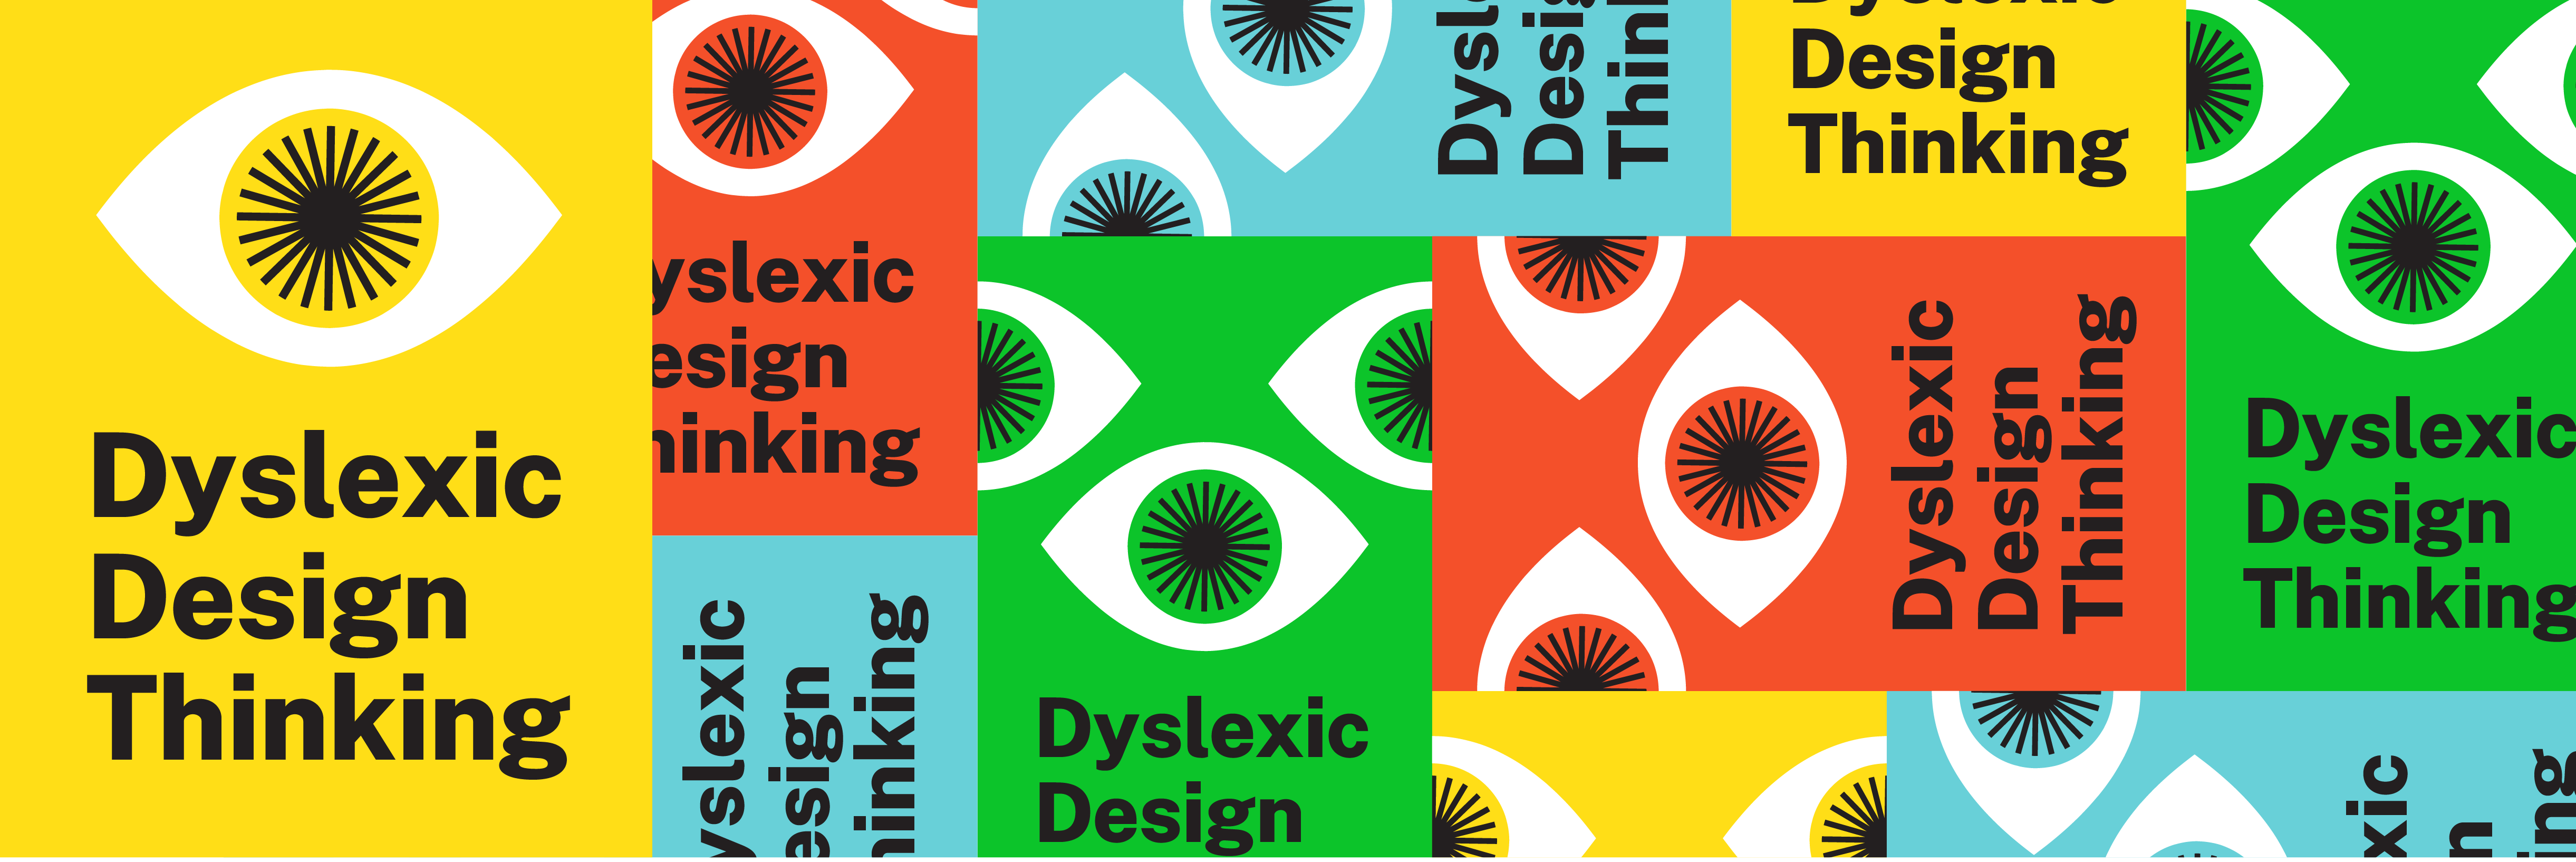 The banner for Dyslexic Design Thinking, made up of red, green, yellow and blue squares, each with a design of an open eye.